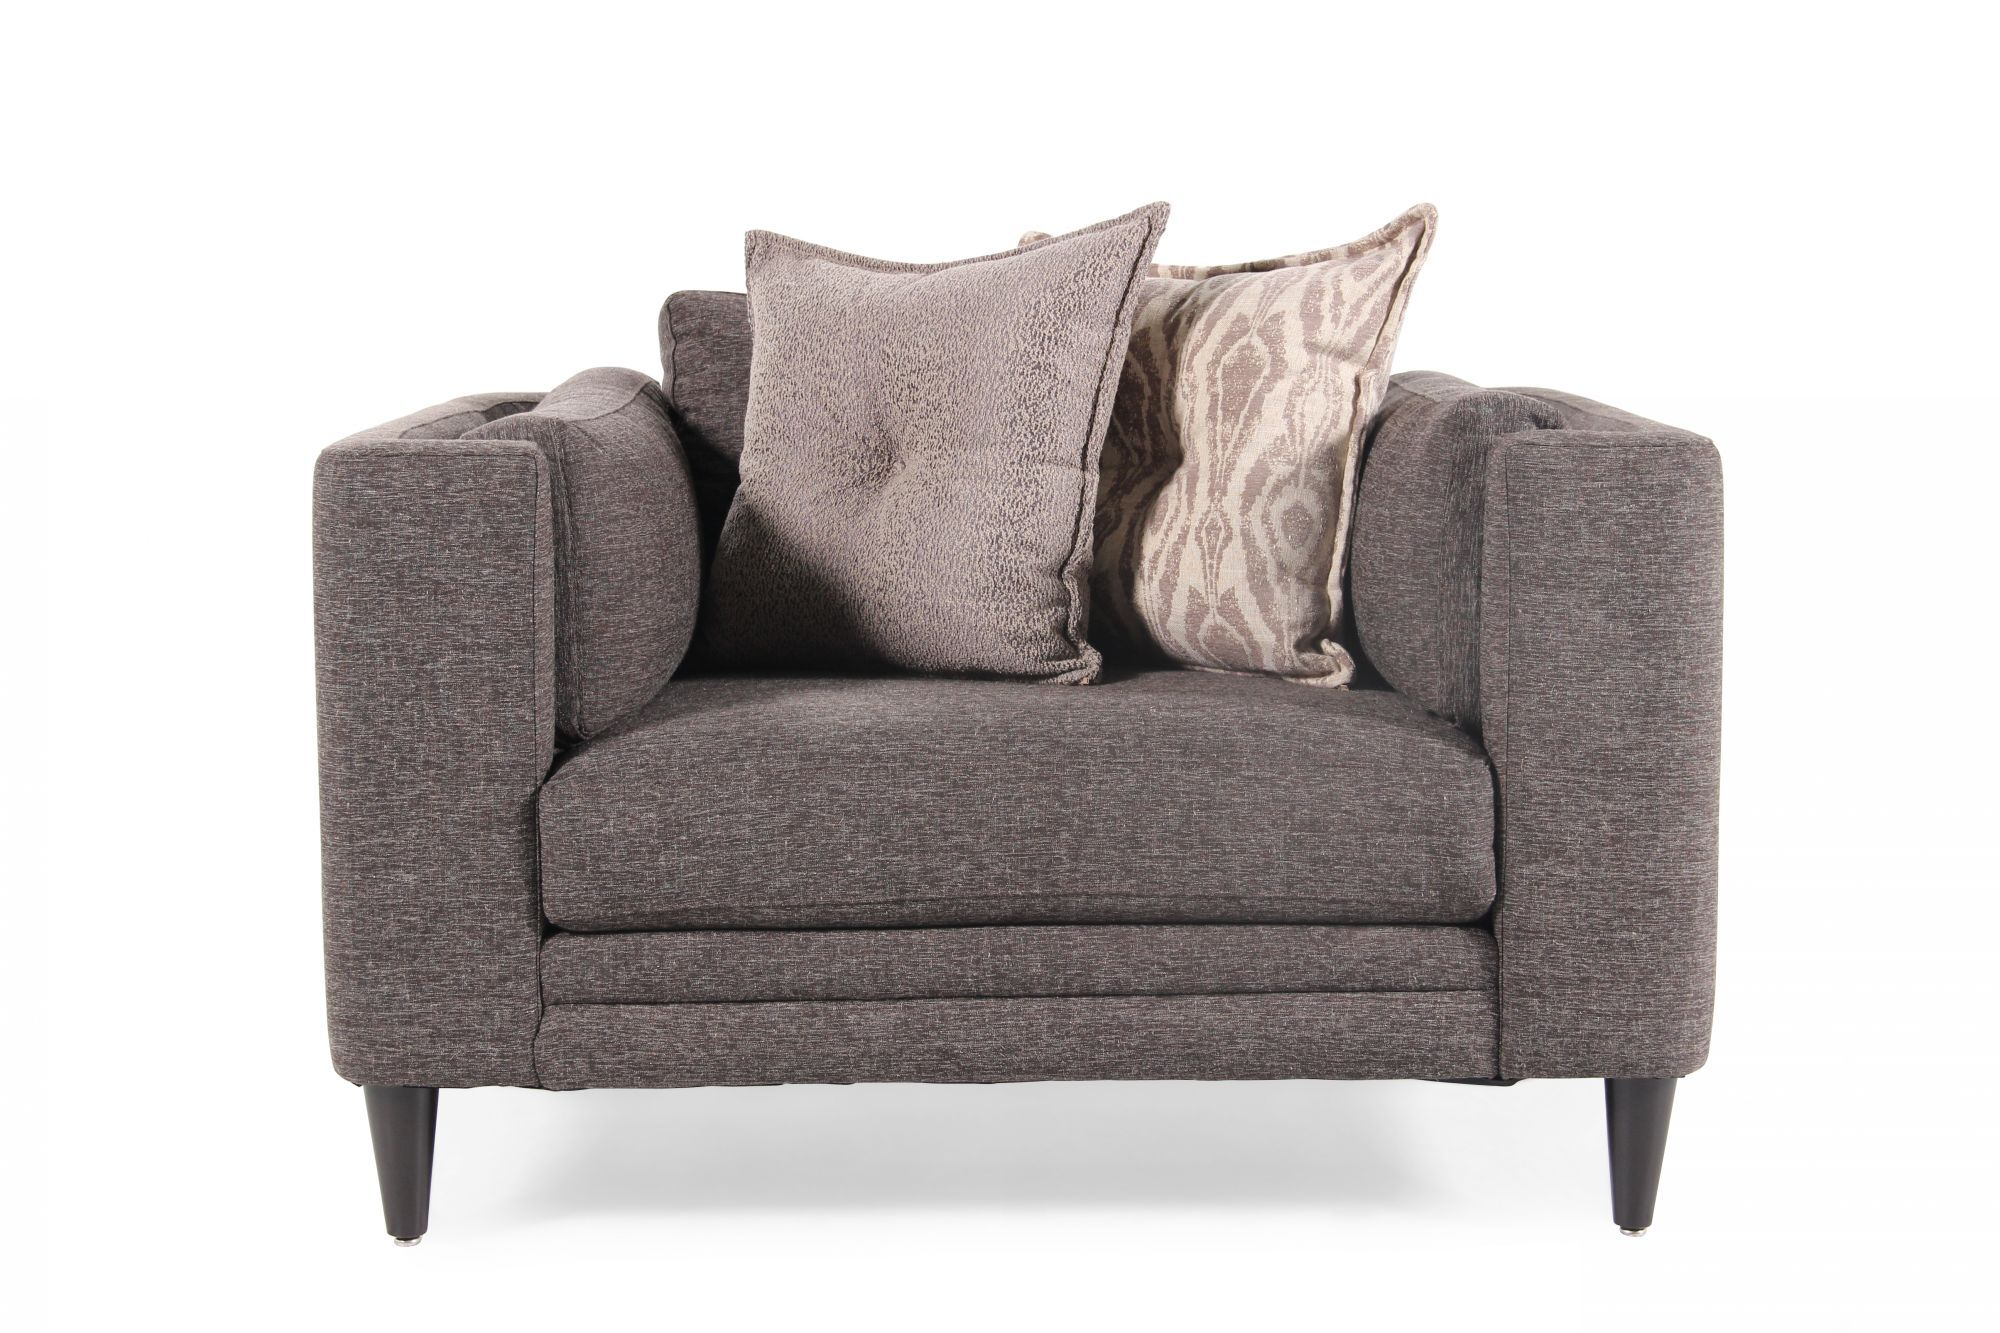 Low Profile Contemporary Arm Chair In Platinum Gray